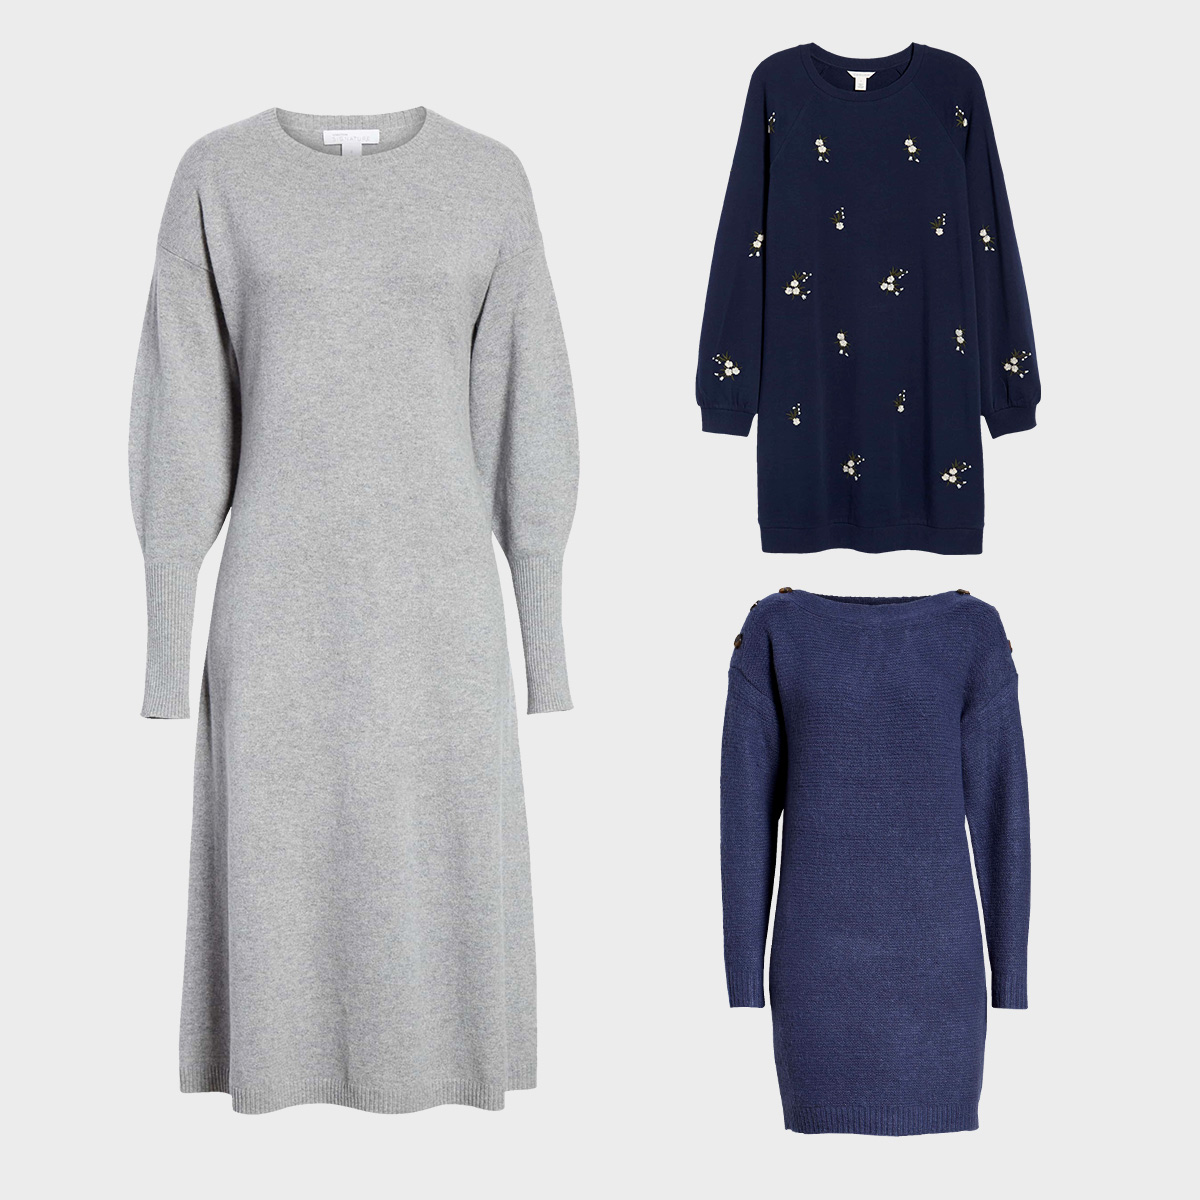 Three dresses perfect for wearing during the day in the fall.